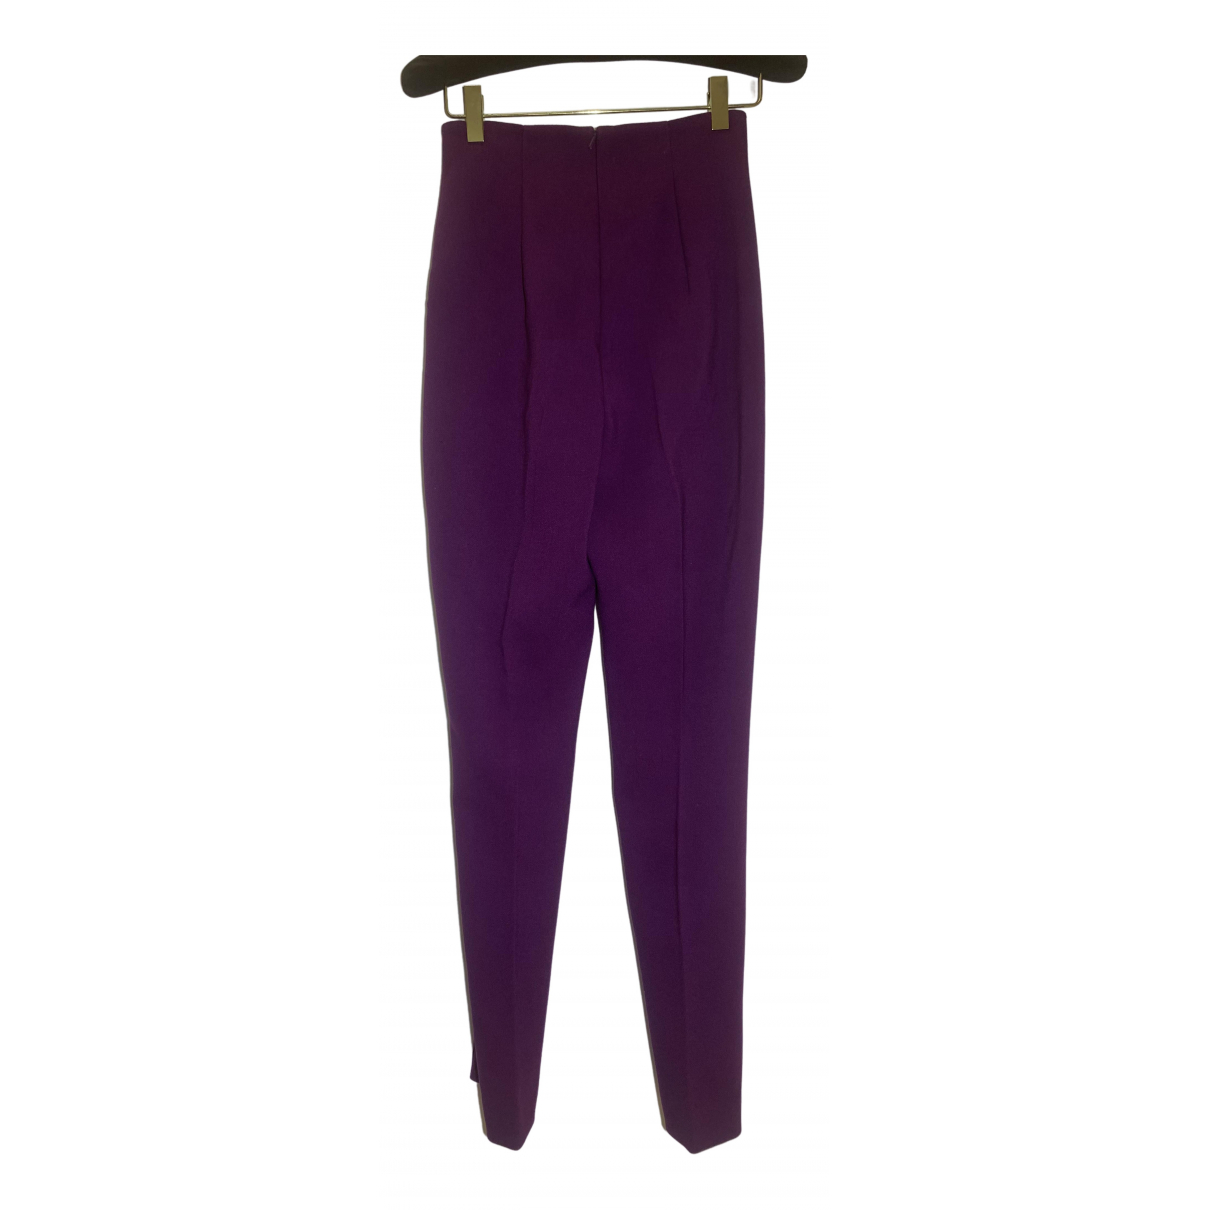 Lk Bennett \N Purple Trousers for Women 36 FR